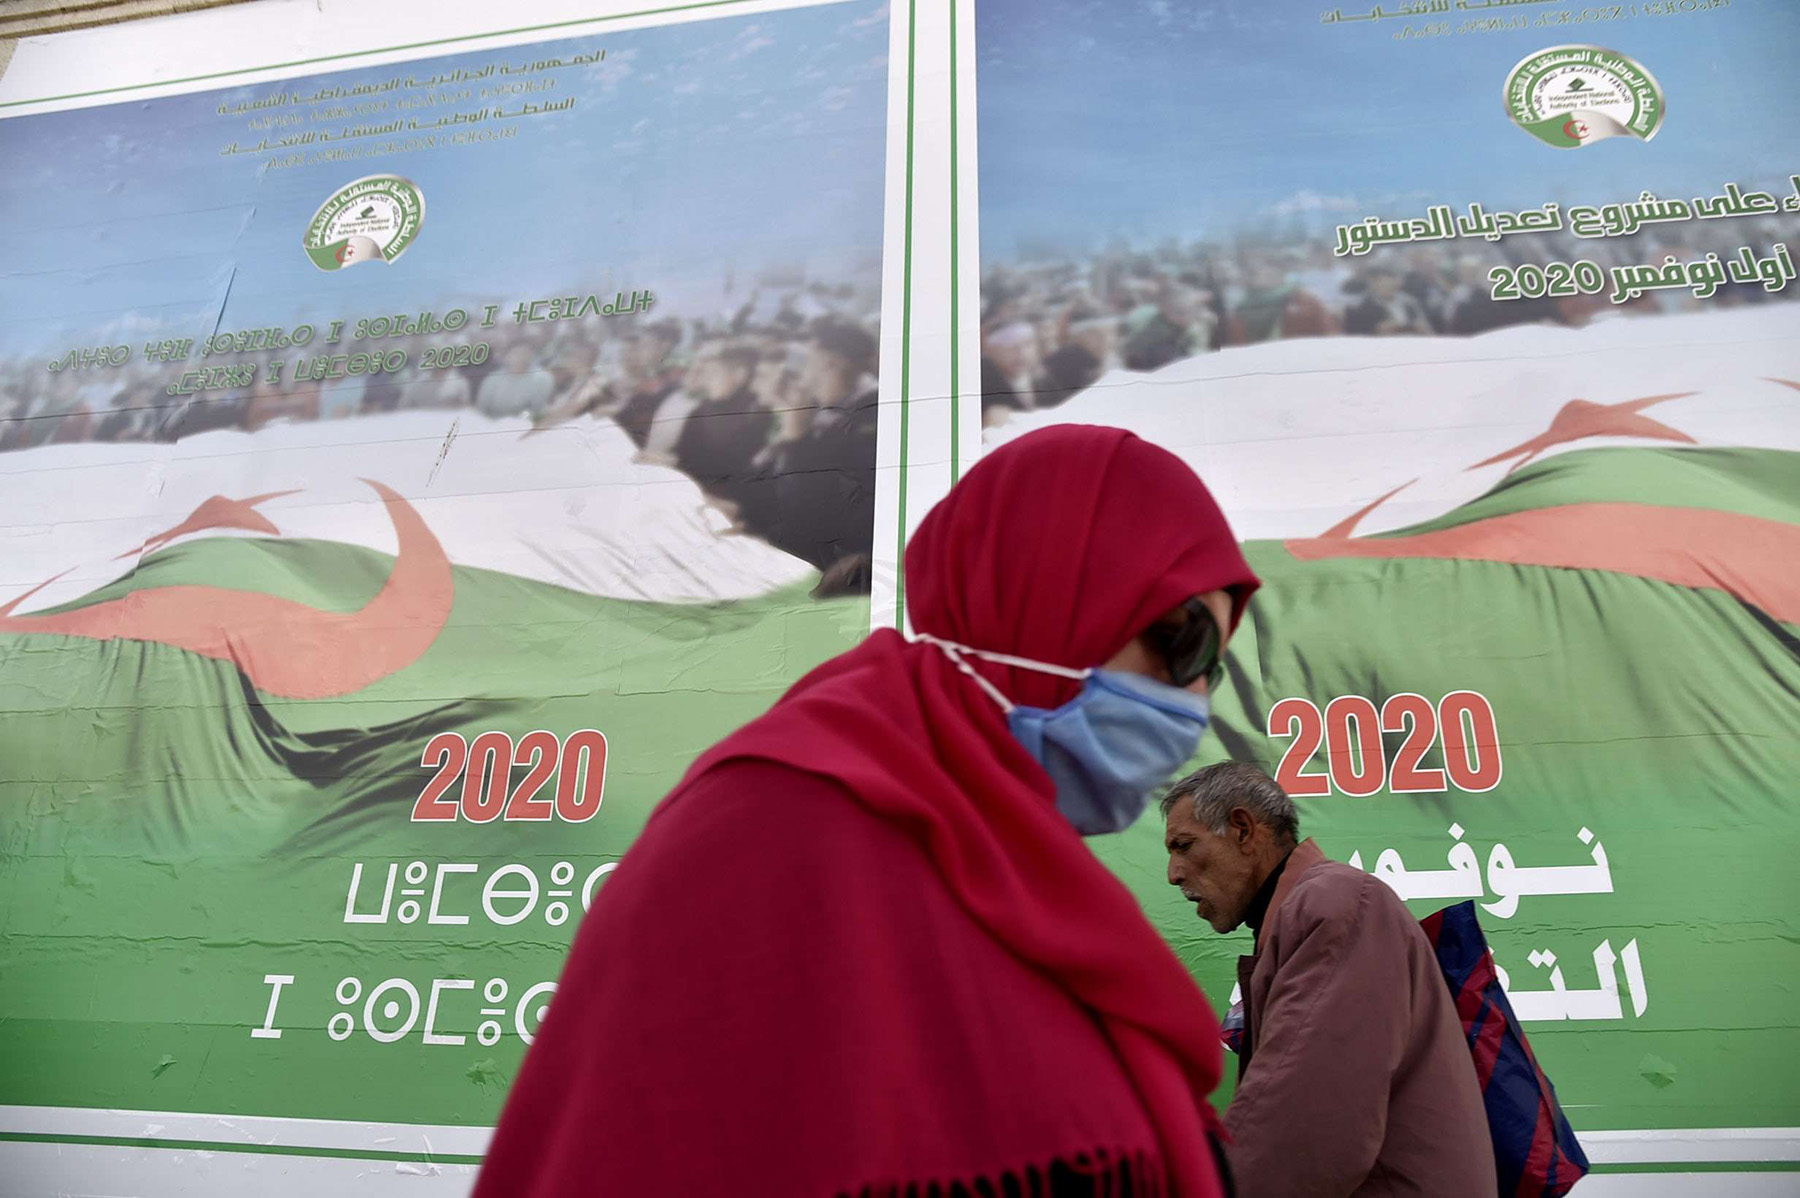 Algerians walk past campaign billboards ahead of the November referendum, on October 22, in Algiers. (AFP)